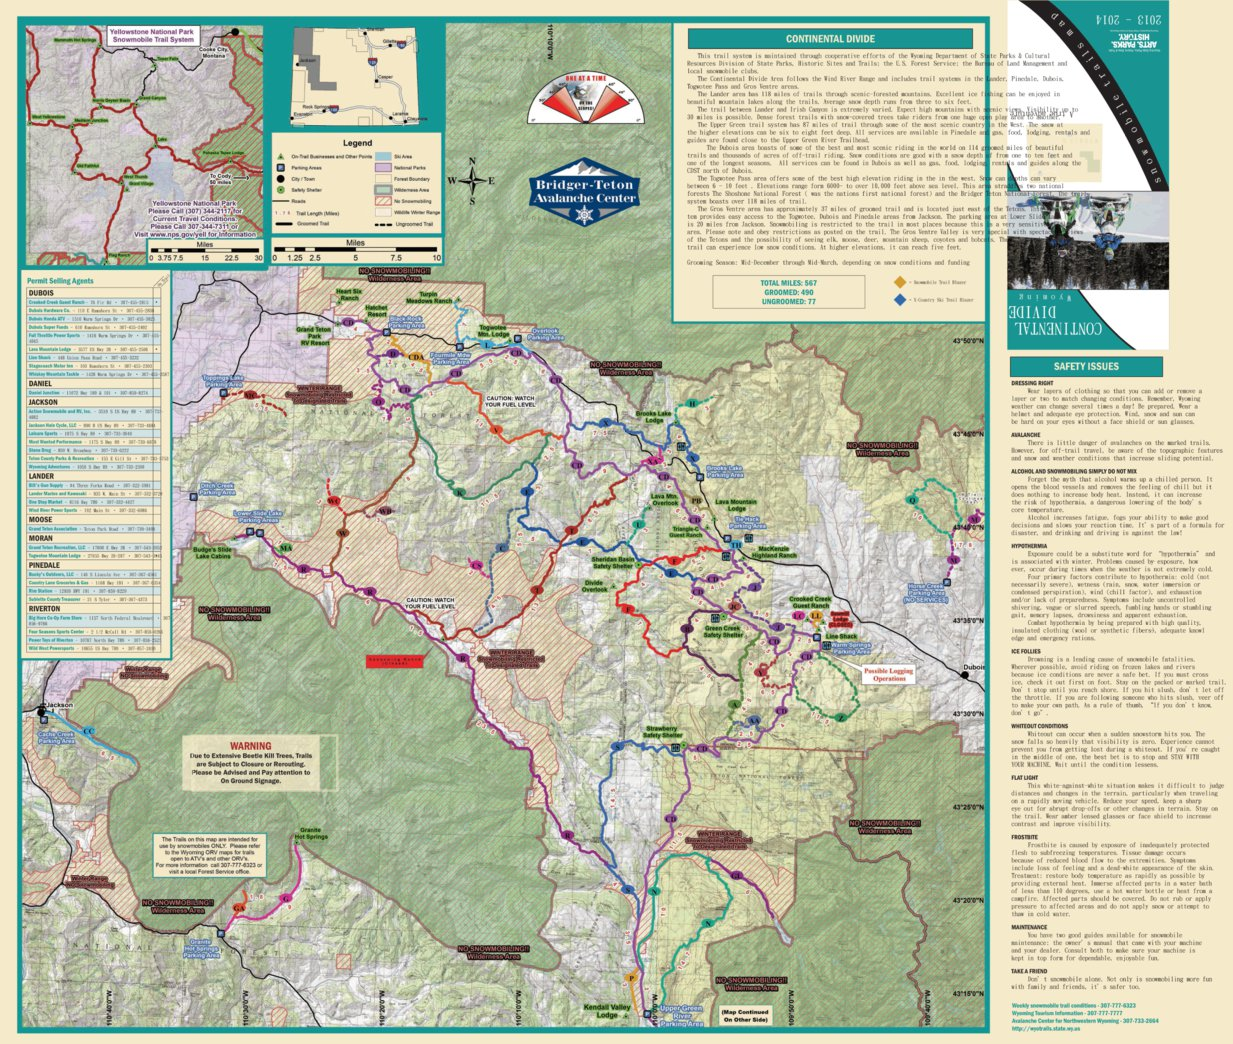 Continental Divide   Wyoming Trail Map   Avenza Systems Inc